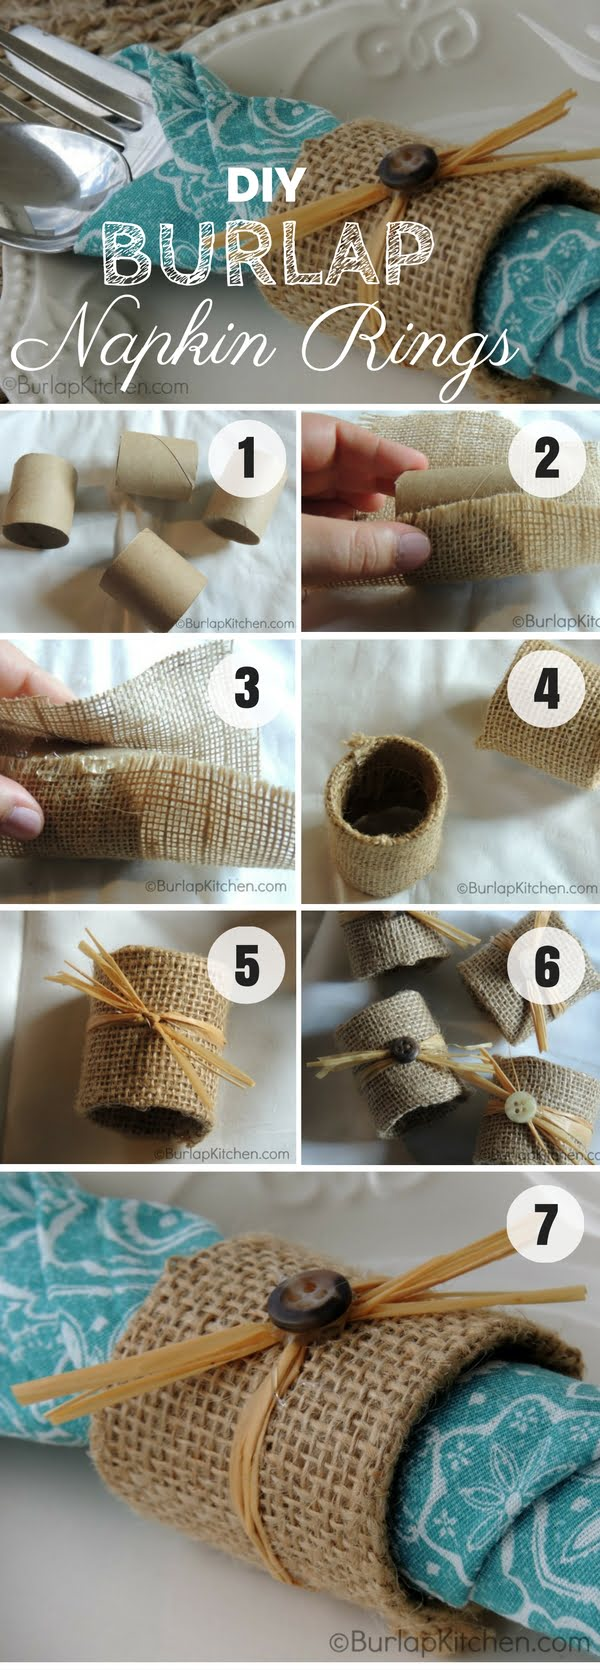 Easy to make DIY Burlap Napkin Rings for fall decor